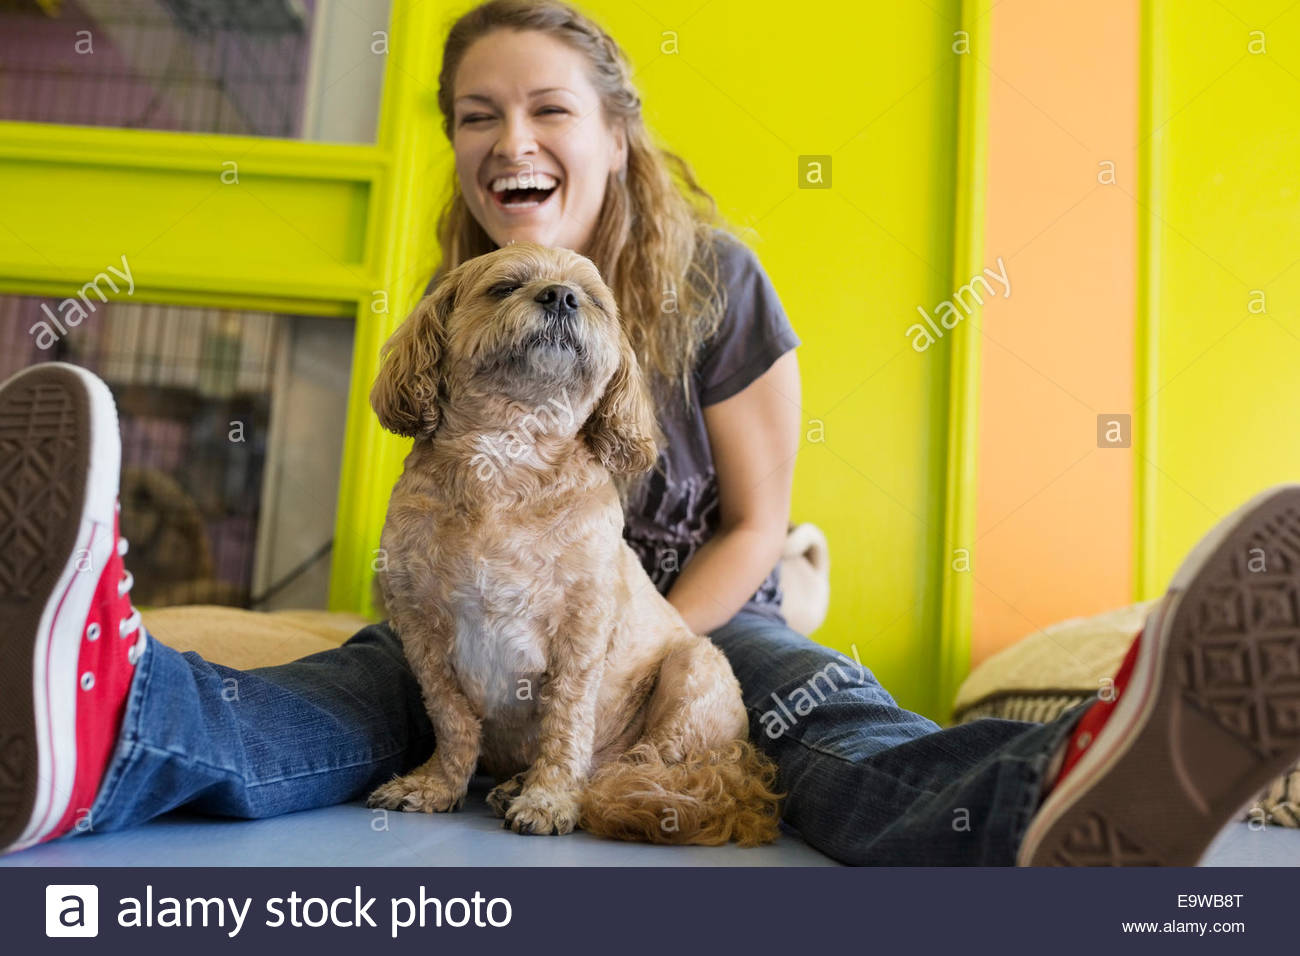 Laughing woman with dog - Stock Image